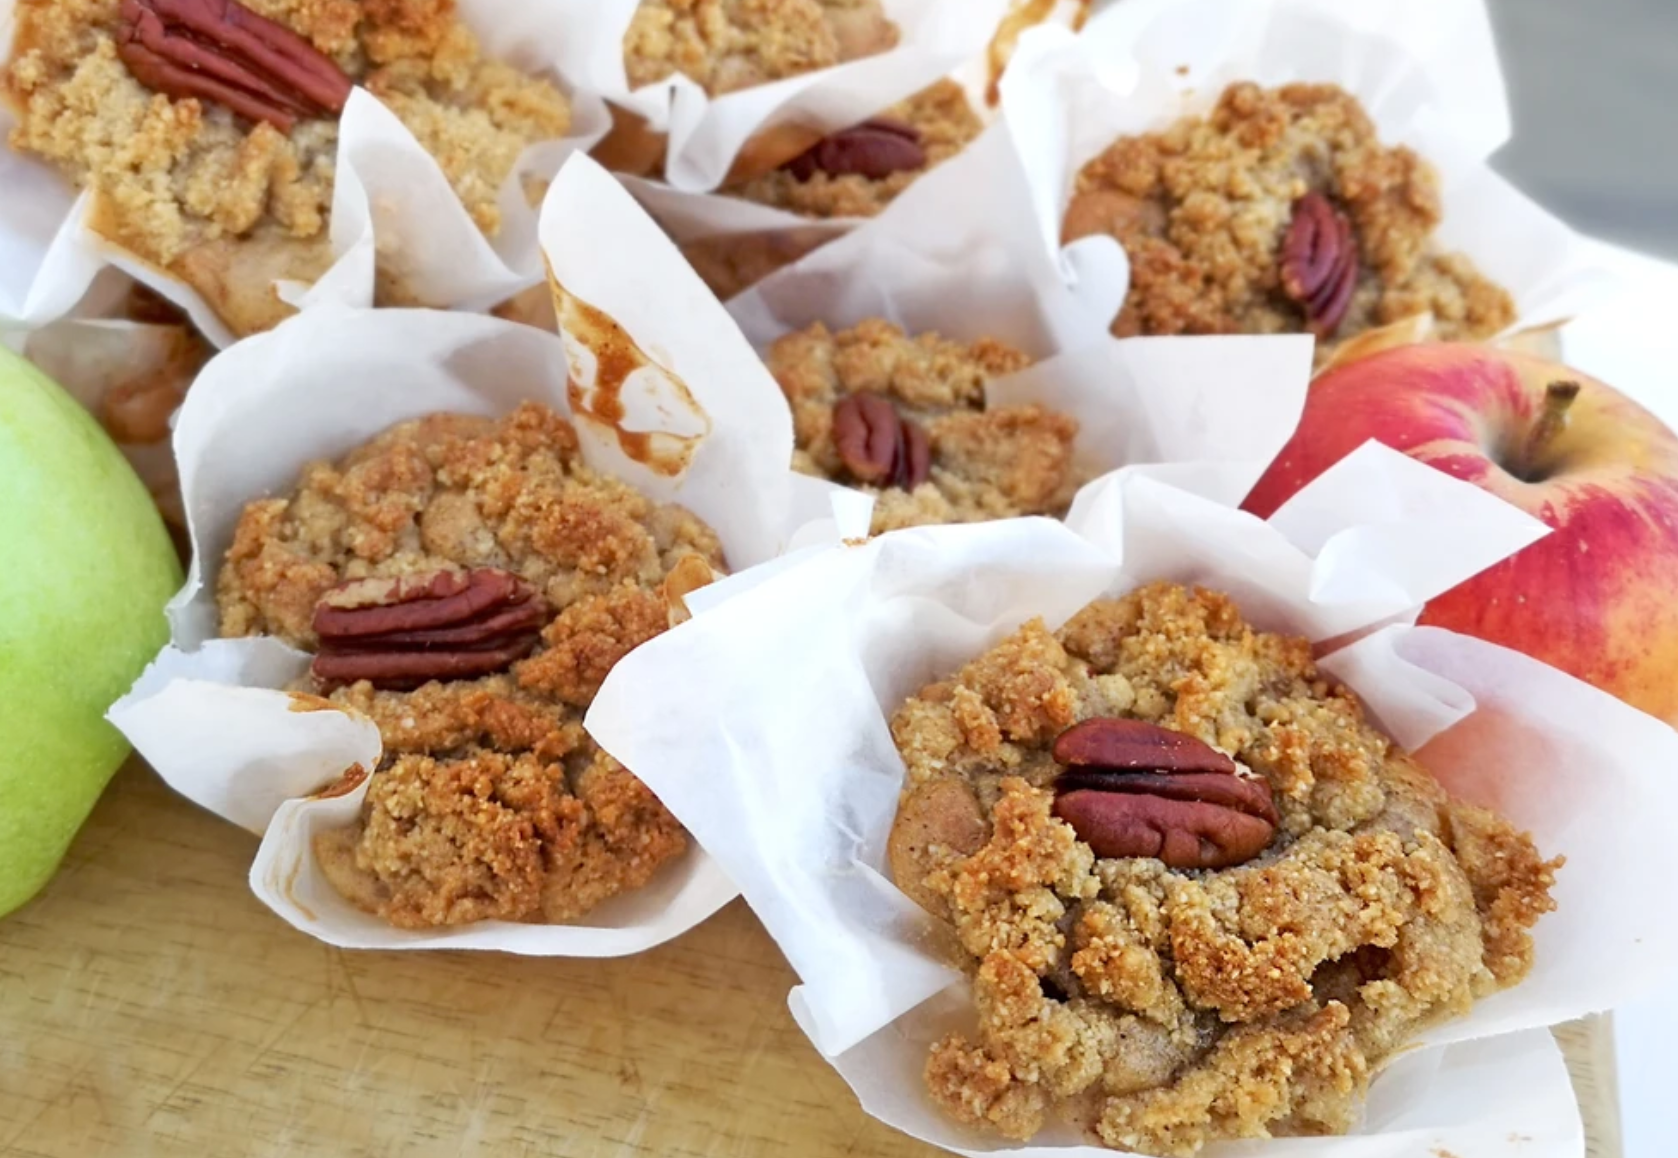 Gluten Free Apple & Cinnamon Muffin with Crumble Topping Recipe